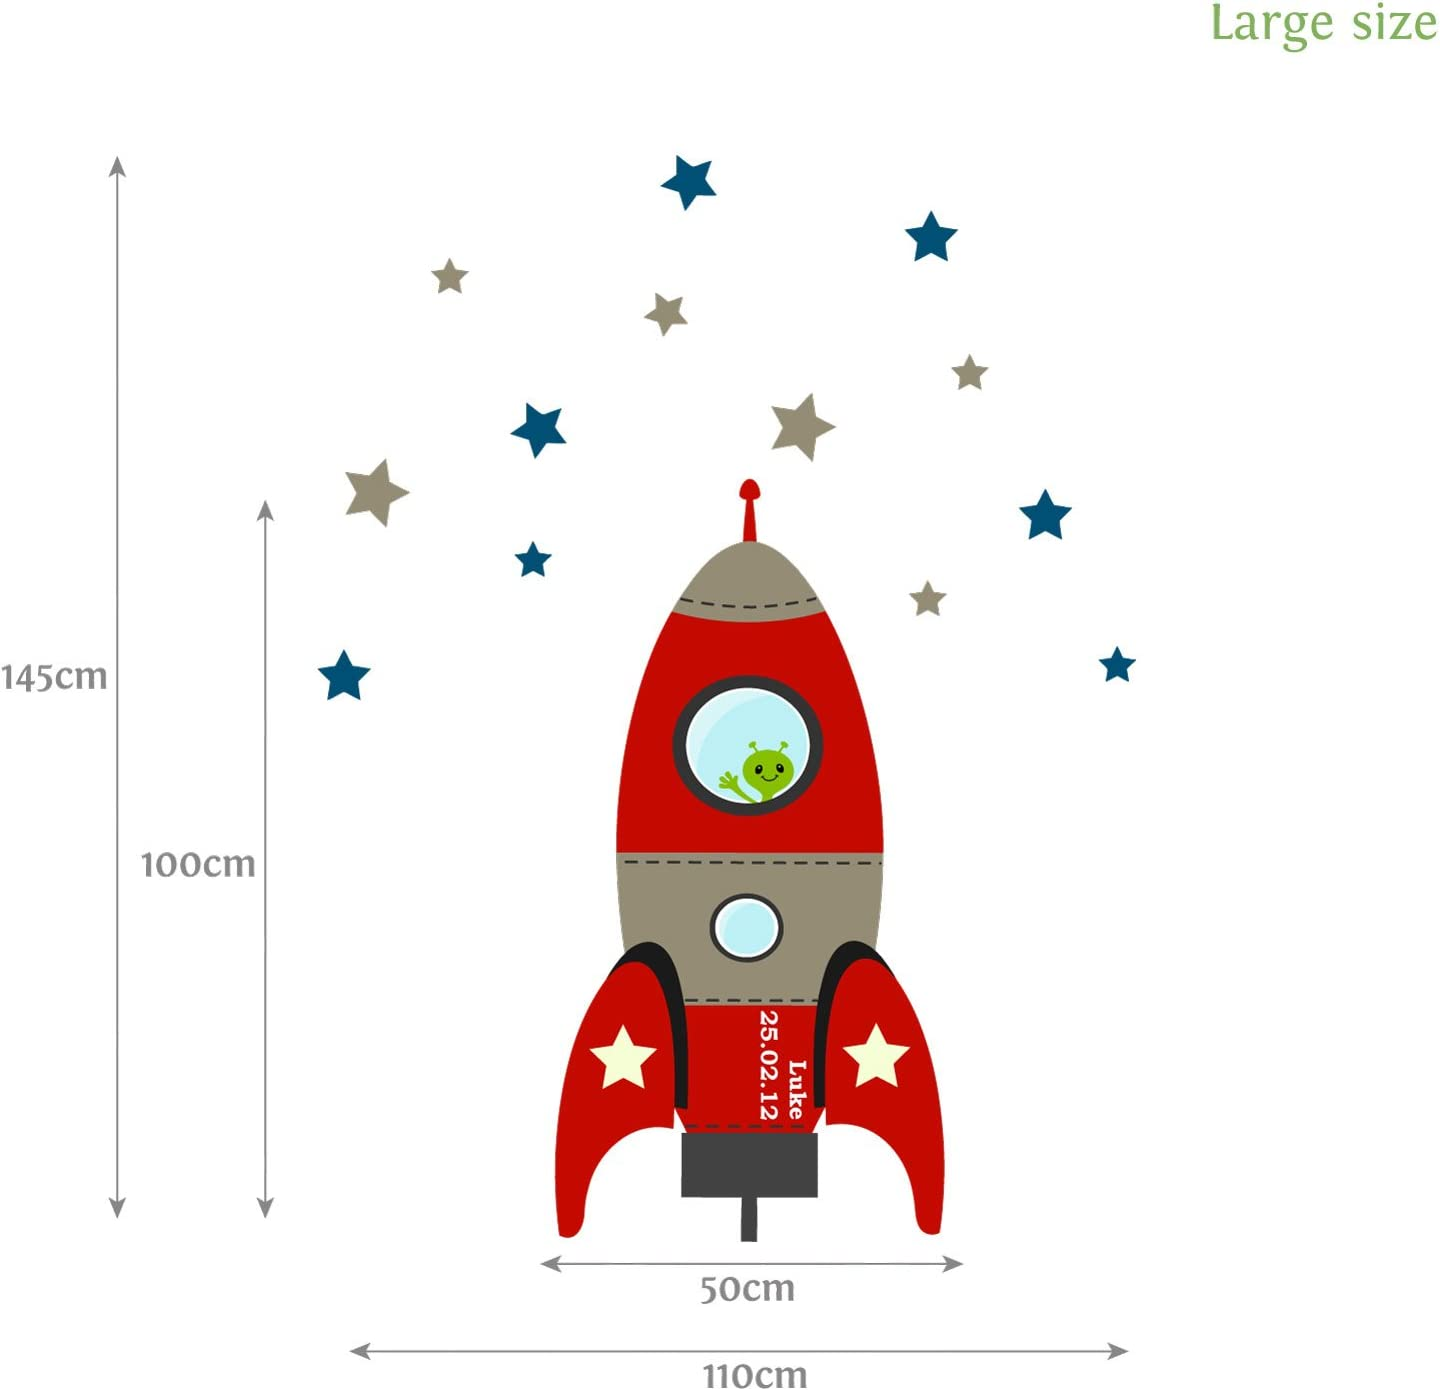 Large Size in Blue Blast Off Rocket Wall Sticker Perfect for Creating a Space Themed Nursery or Bedroom